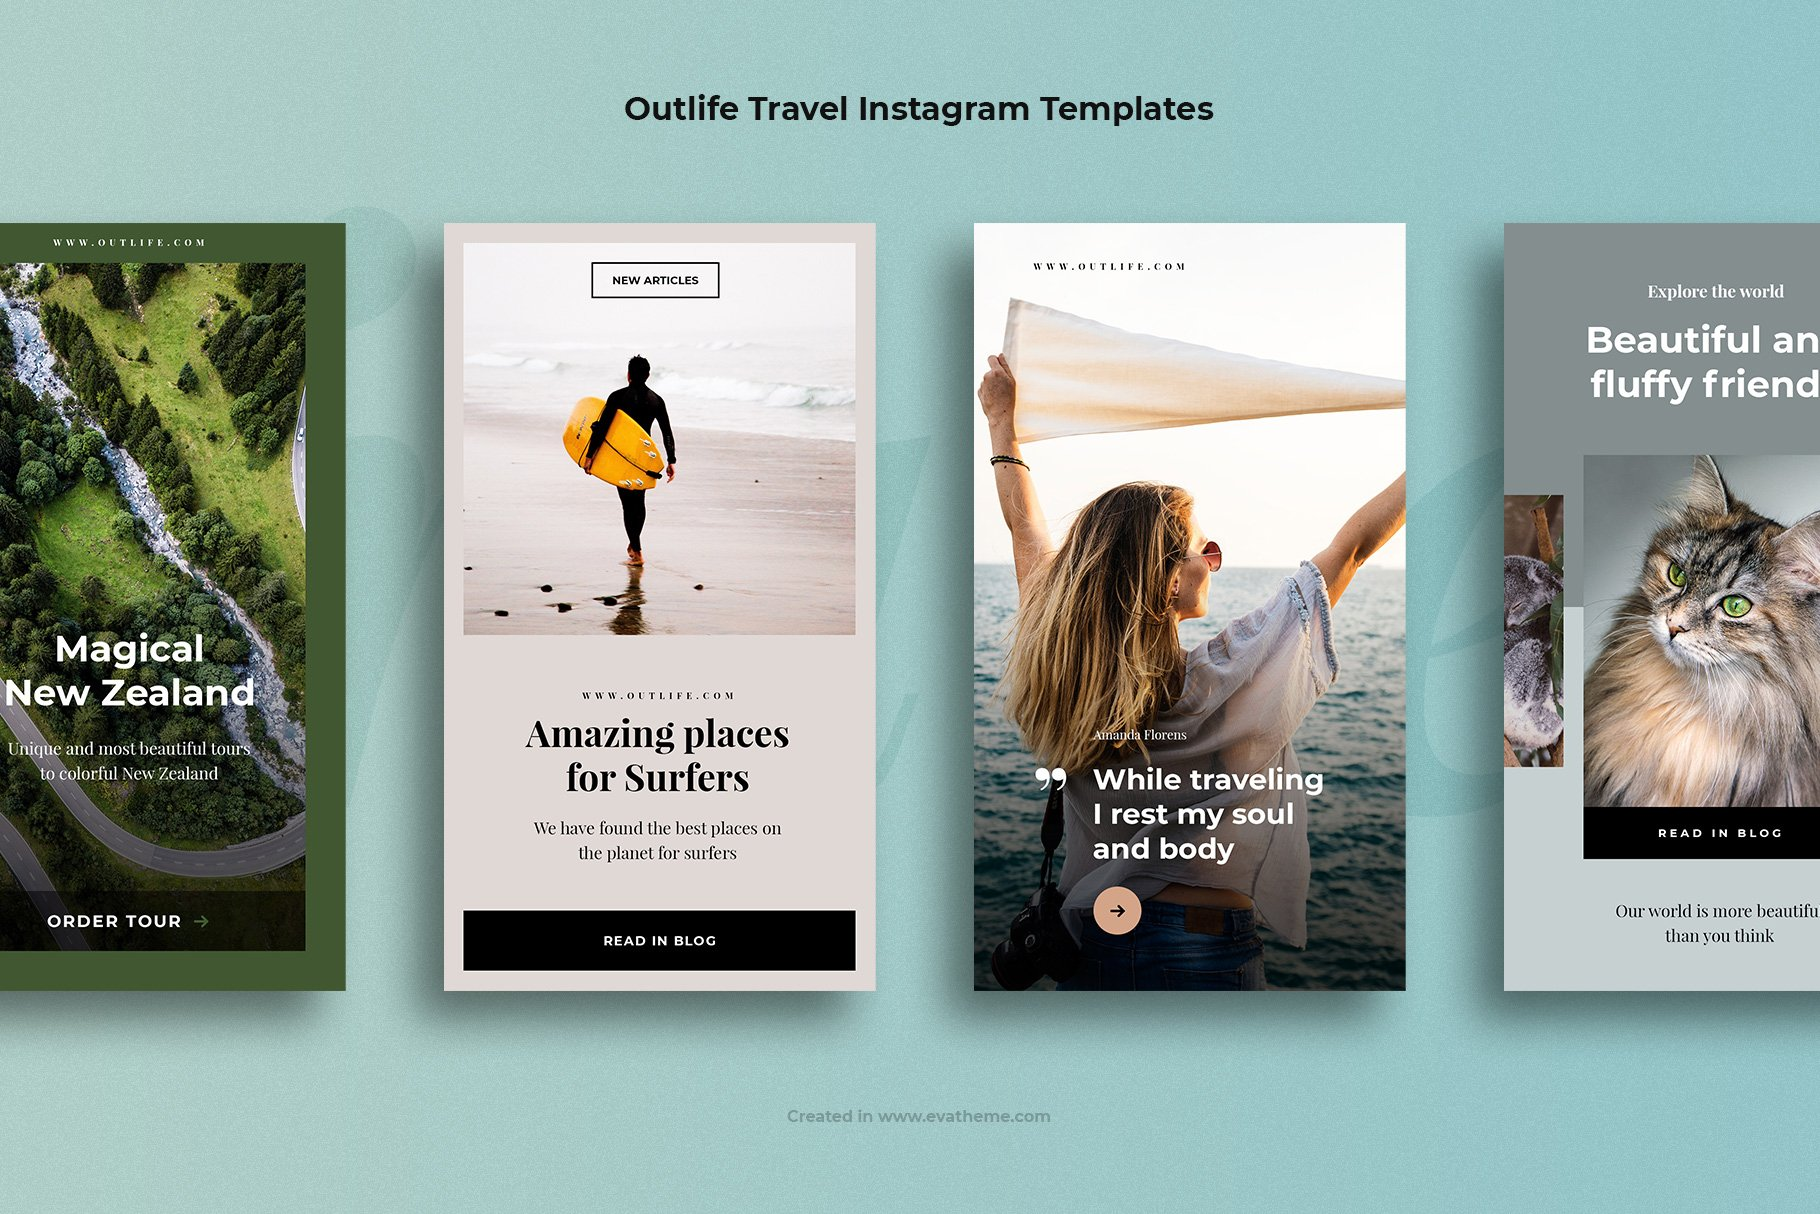 Outlife Travel Instagram Templates example image 2